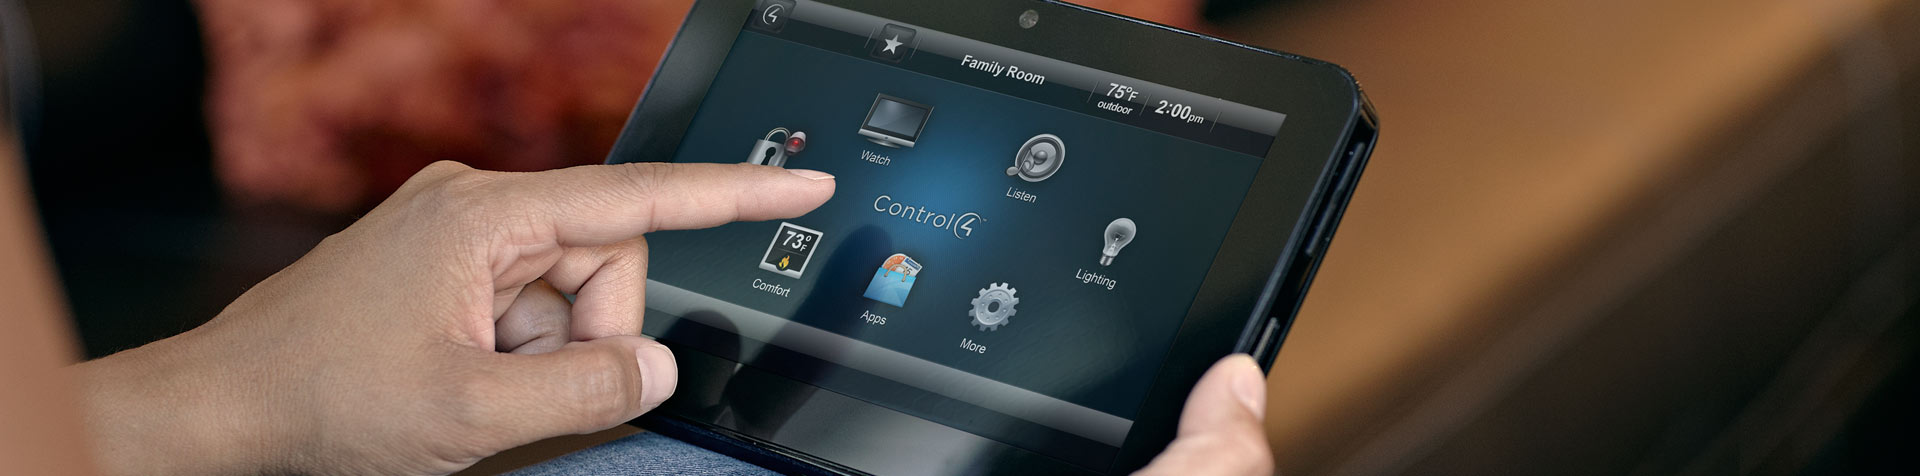 complete_home_automation